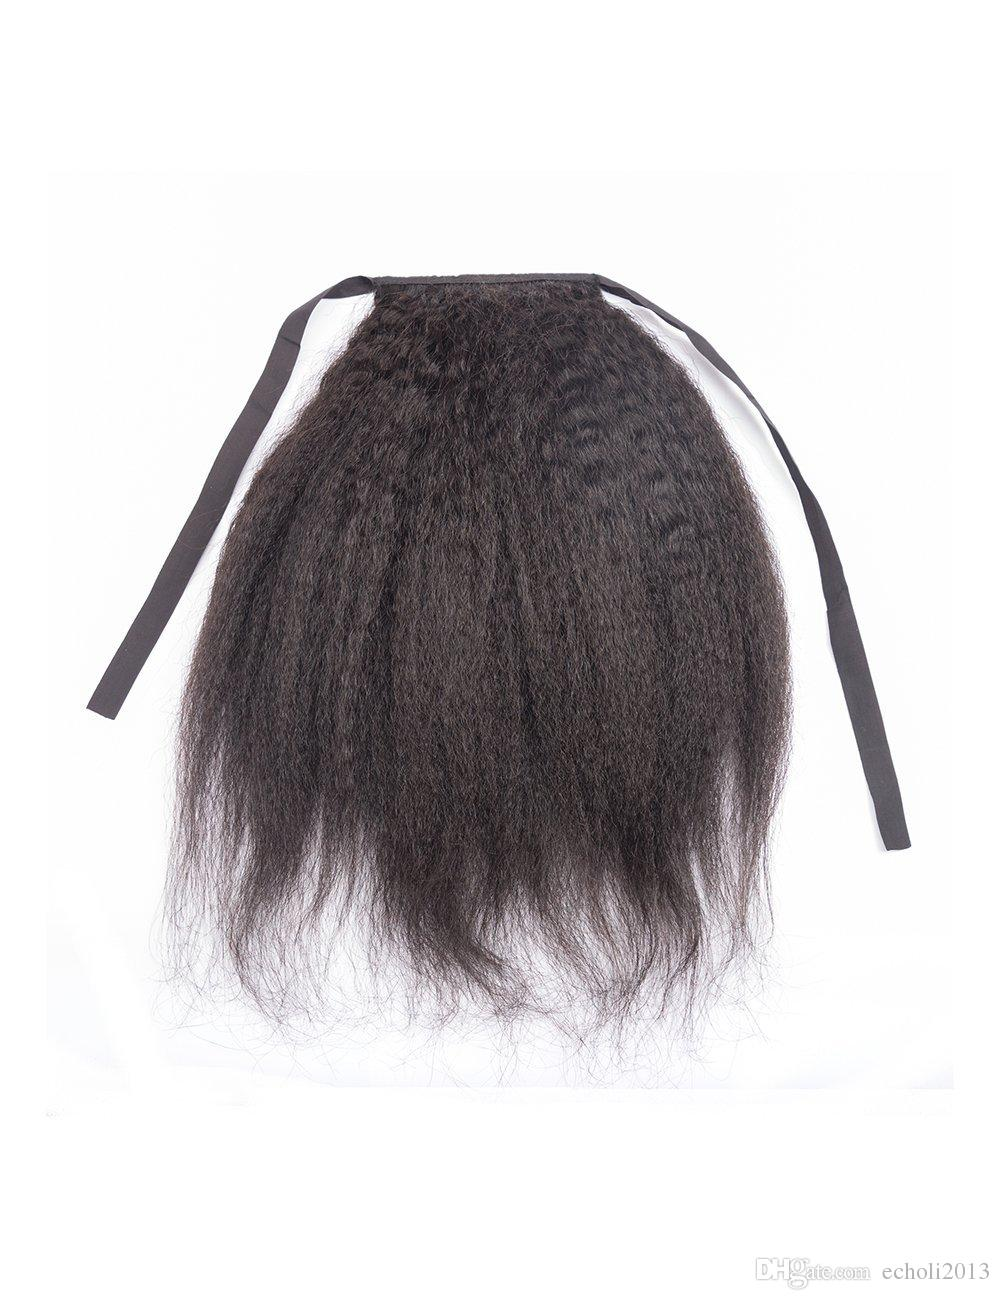 16 Inch Kinky Straight Ponytail Extensions Clip in Human Hair Off Black Color 1B Ponytail Natural Hair Extensions 100g Piece